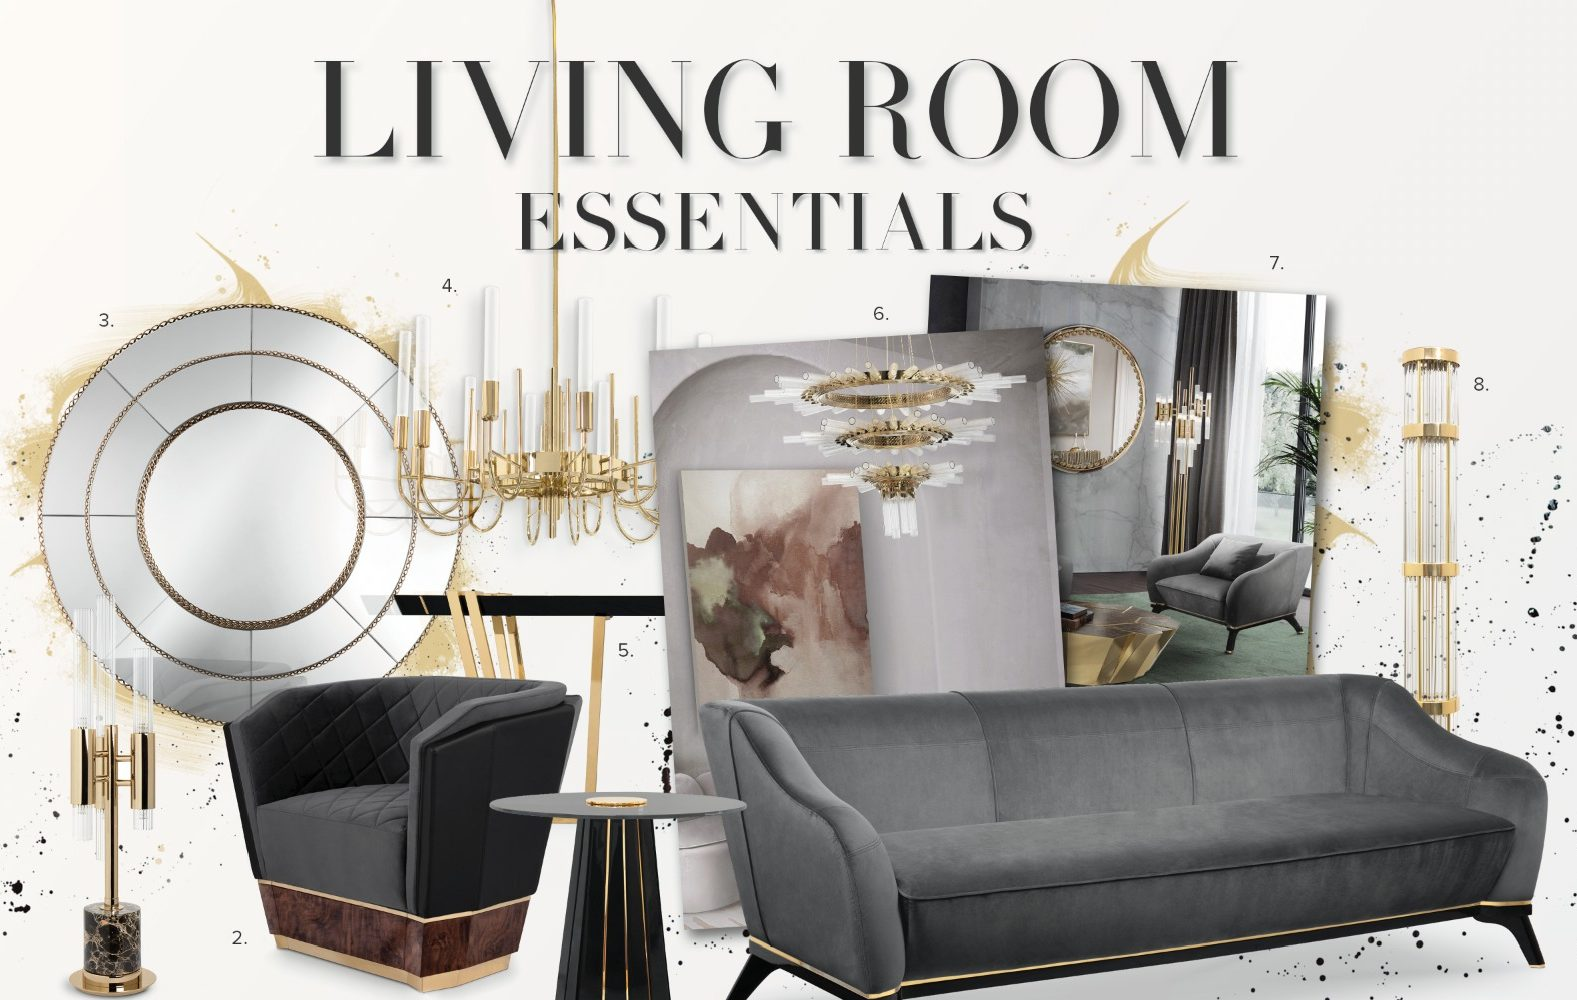 Living Room Essentials- The Mandatory in Craftsmanship Products